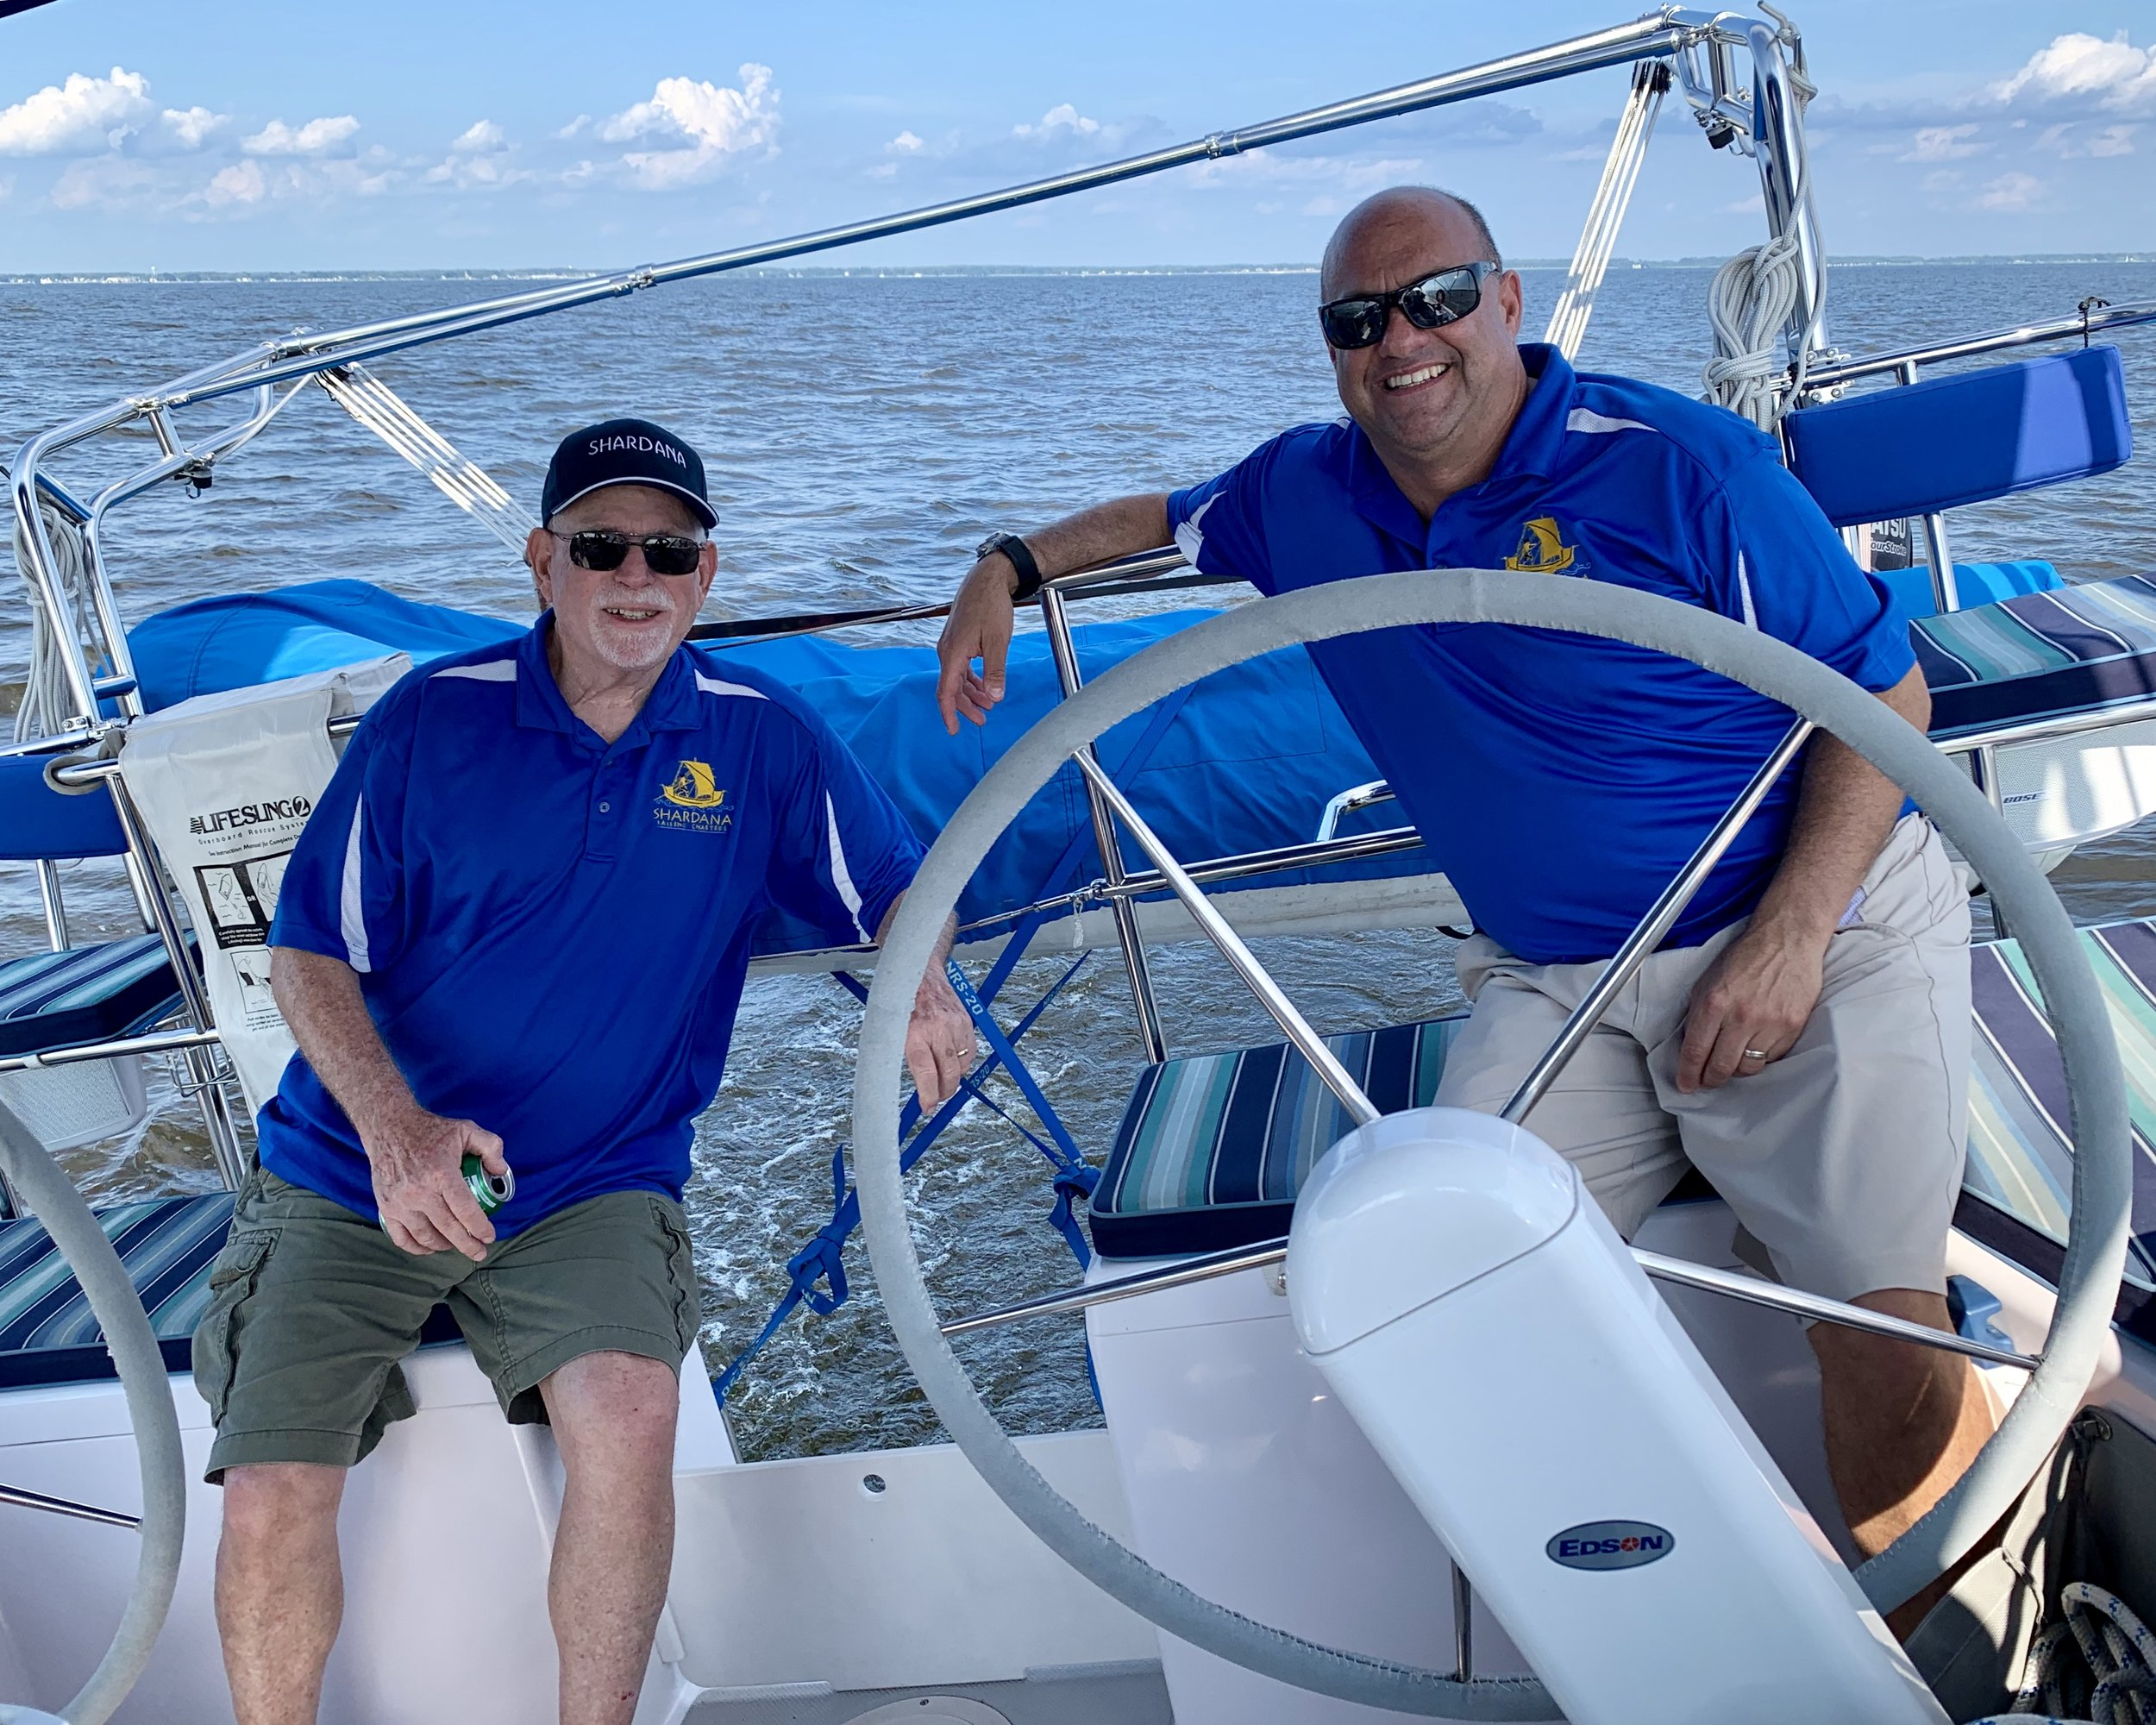 Captain and Crew of Shardana Sailing Charters on Chesapeake Bay